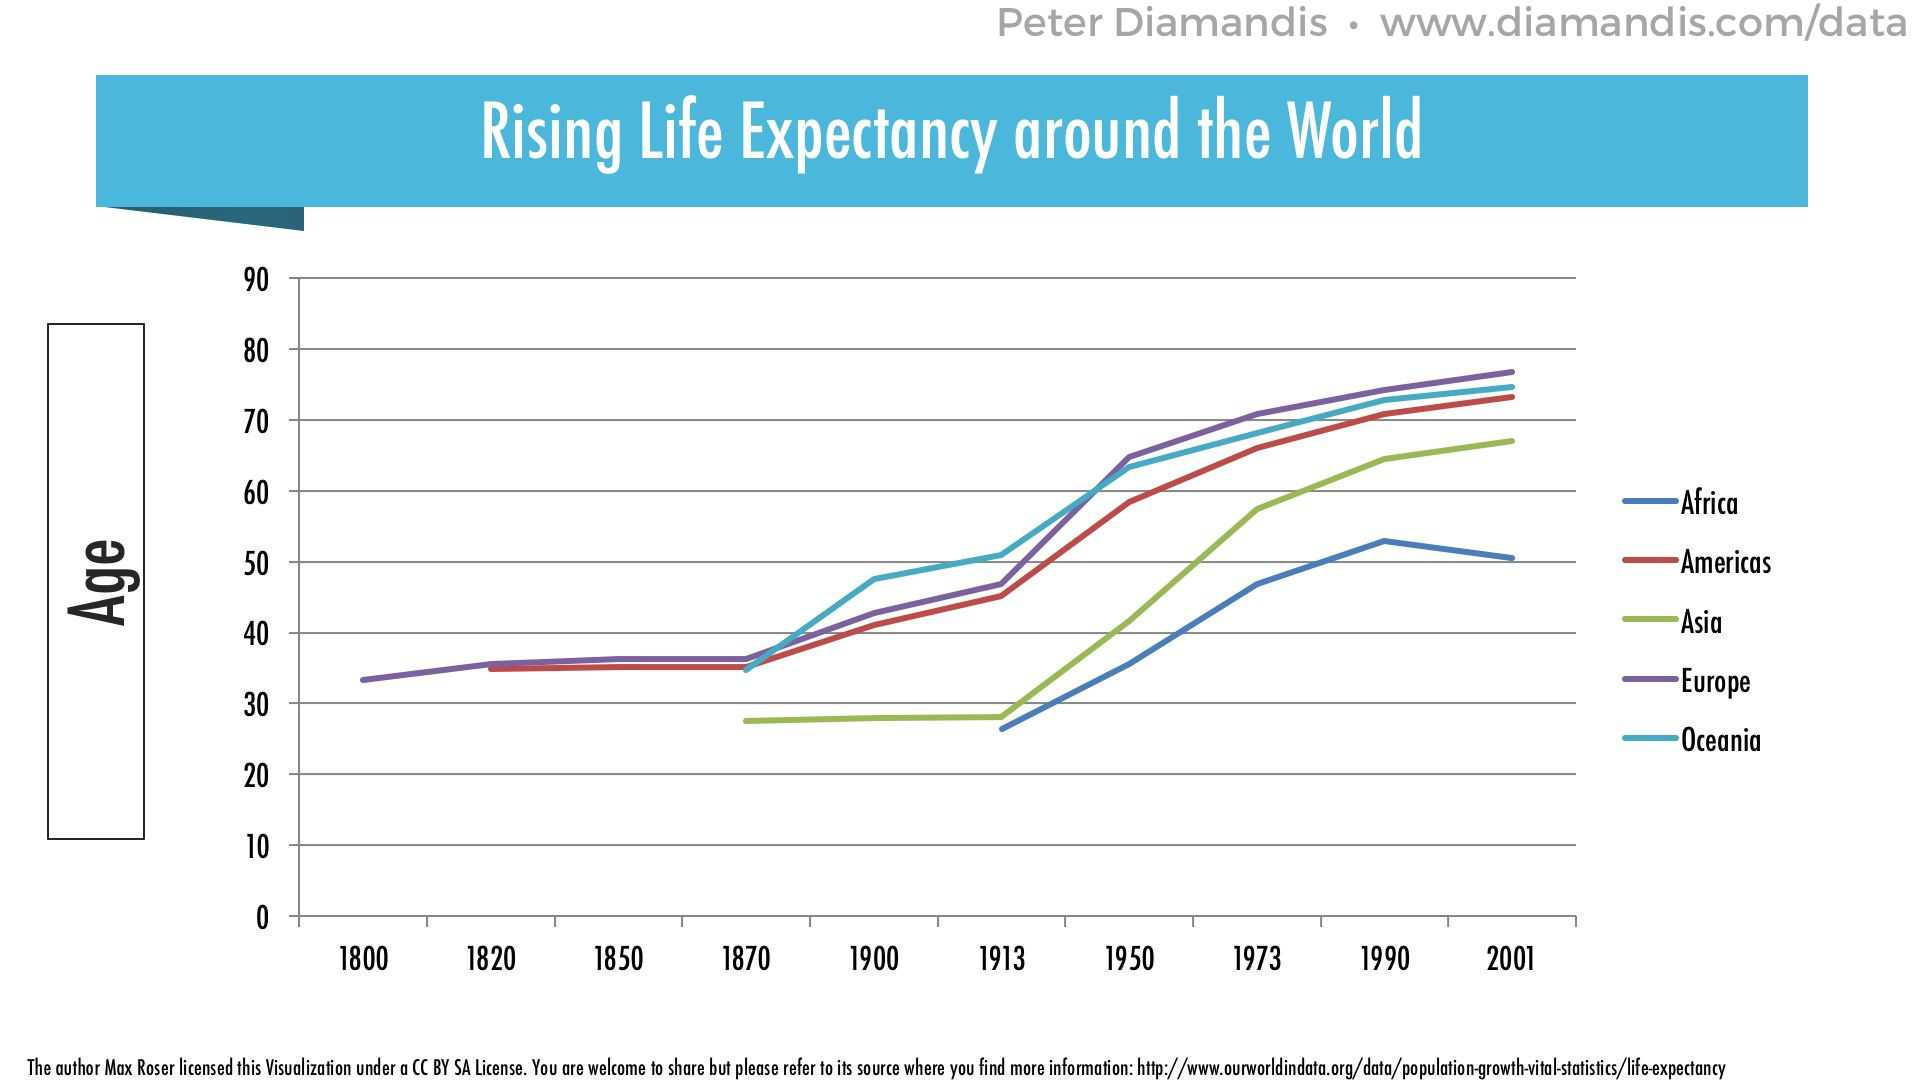 Rising-Life-Expectancy-Around-the-World